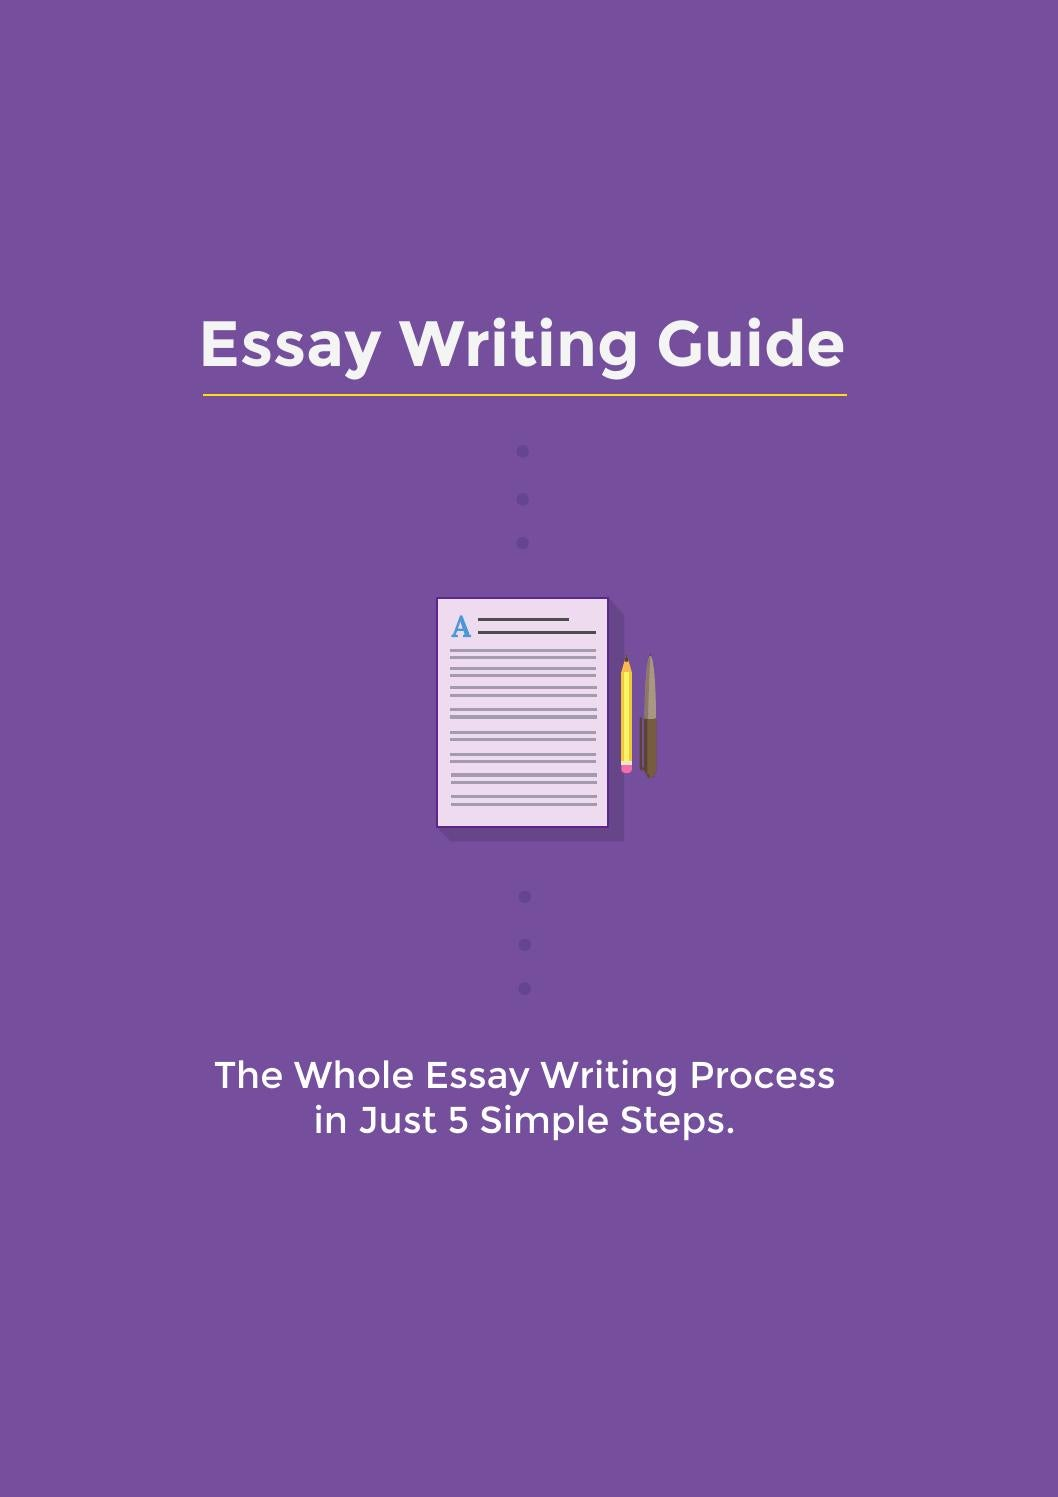 essay writing guide  the whole essay writing process in